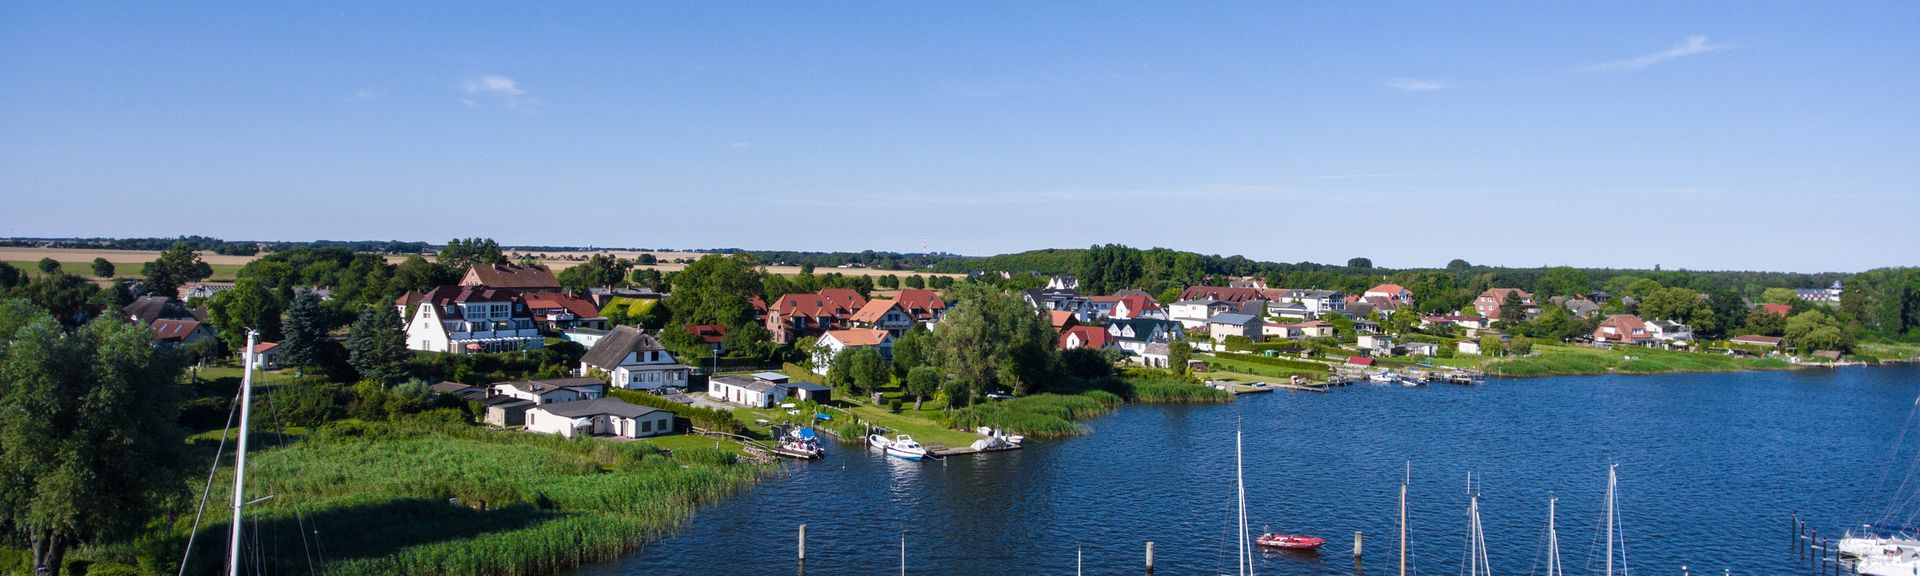 Breege, Mecklenburg-West Pomerania, Germany